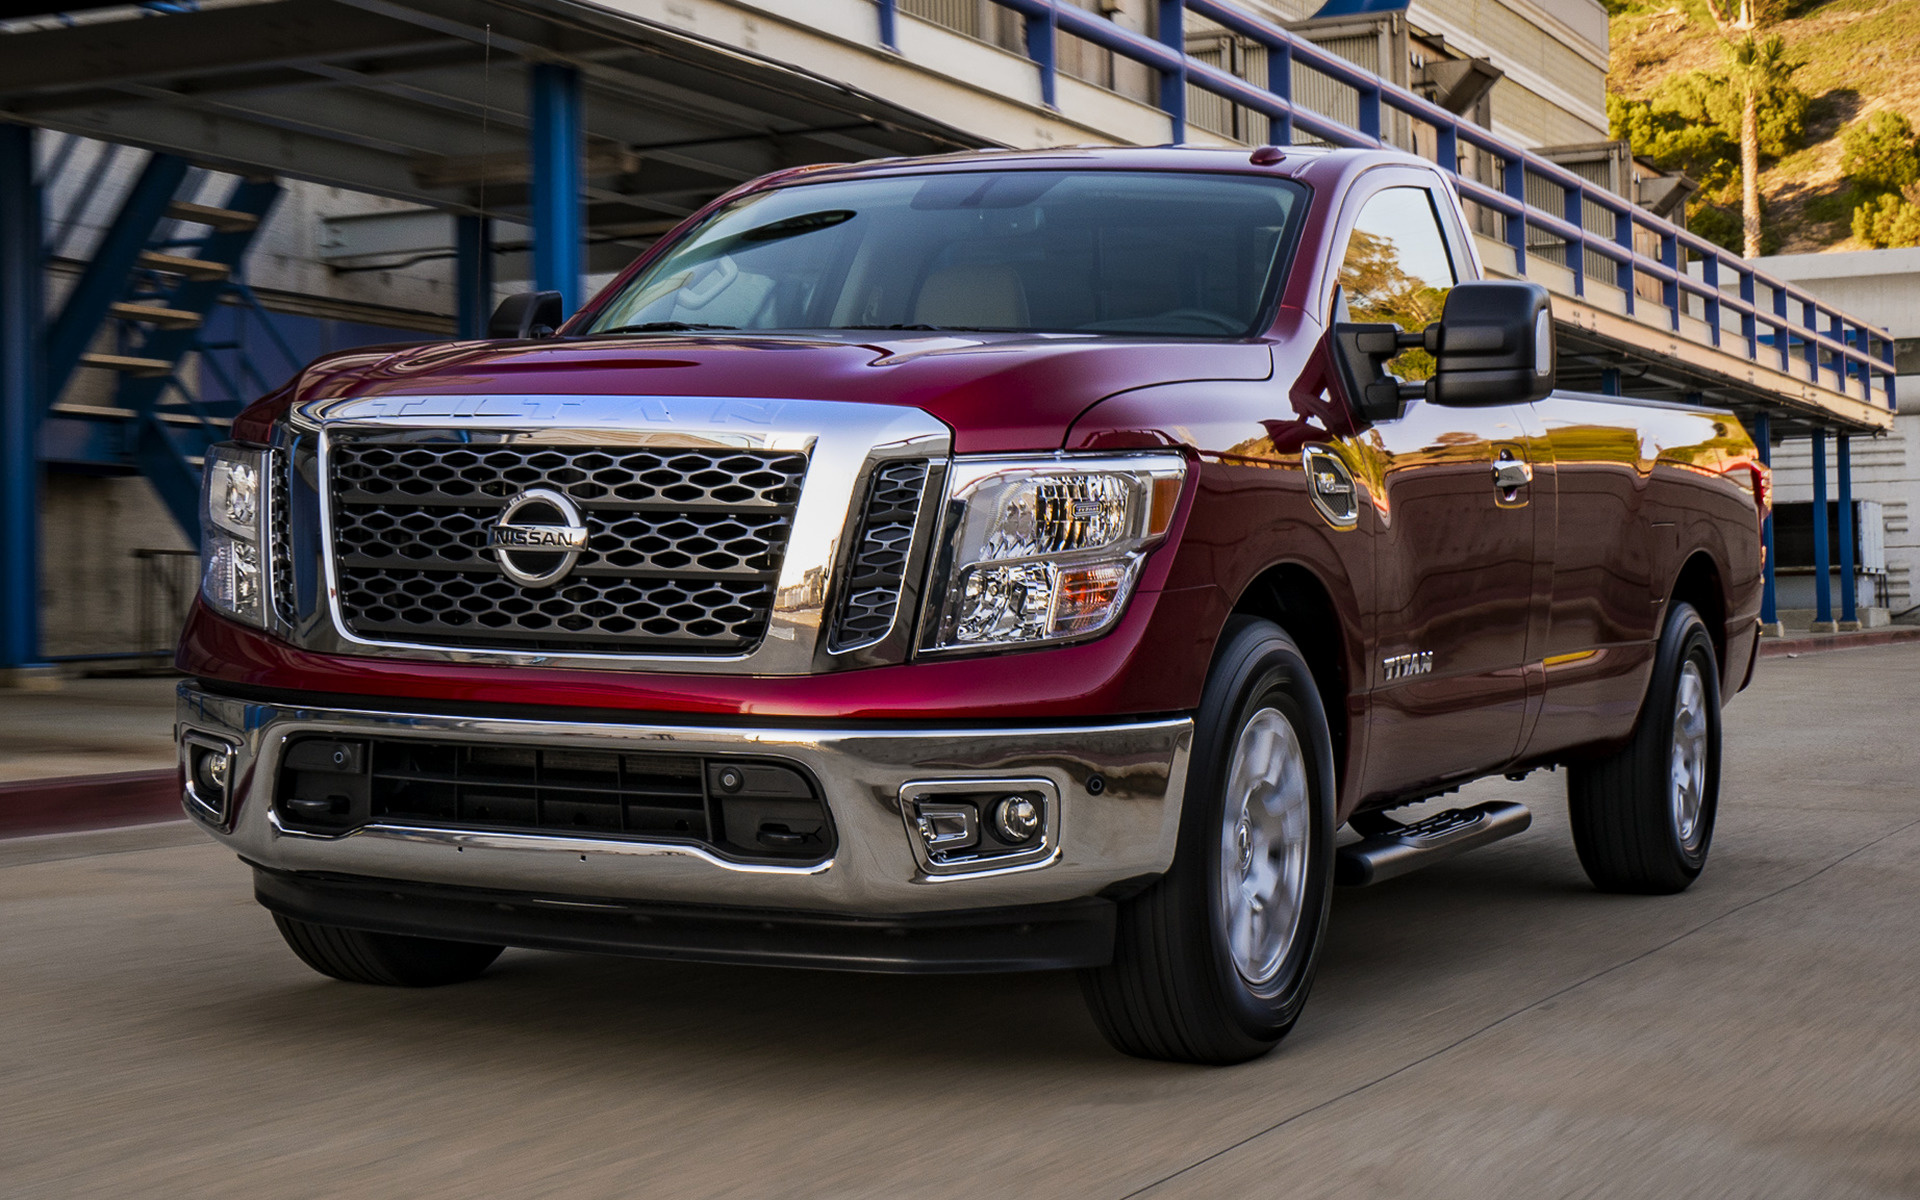 nissan titan sv 2017 wallpapers and hd images car pixel. Black Bedroom Furniture Sets. Home Design Ideas